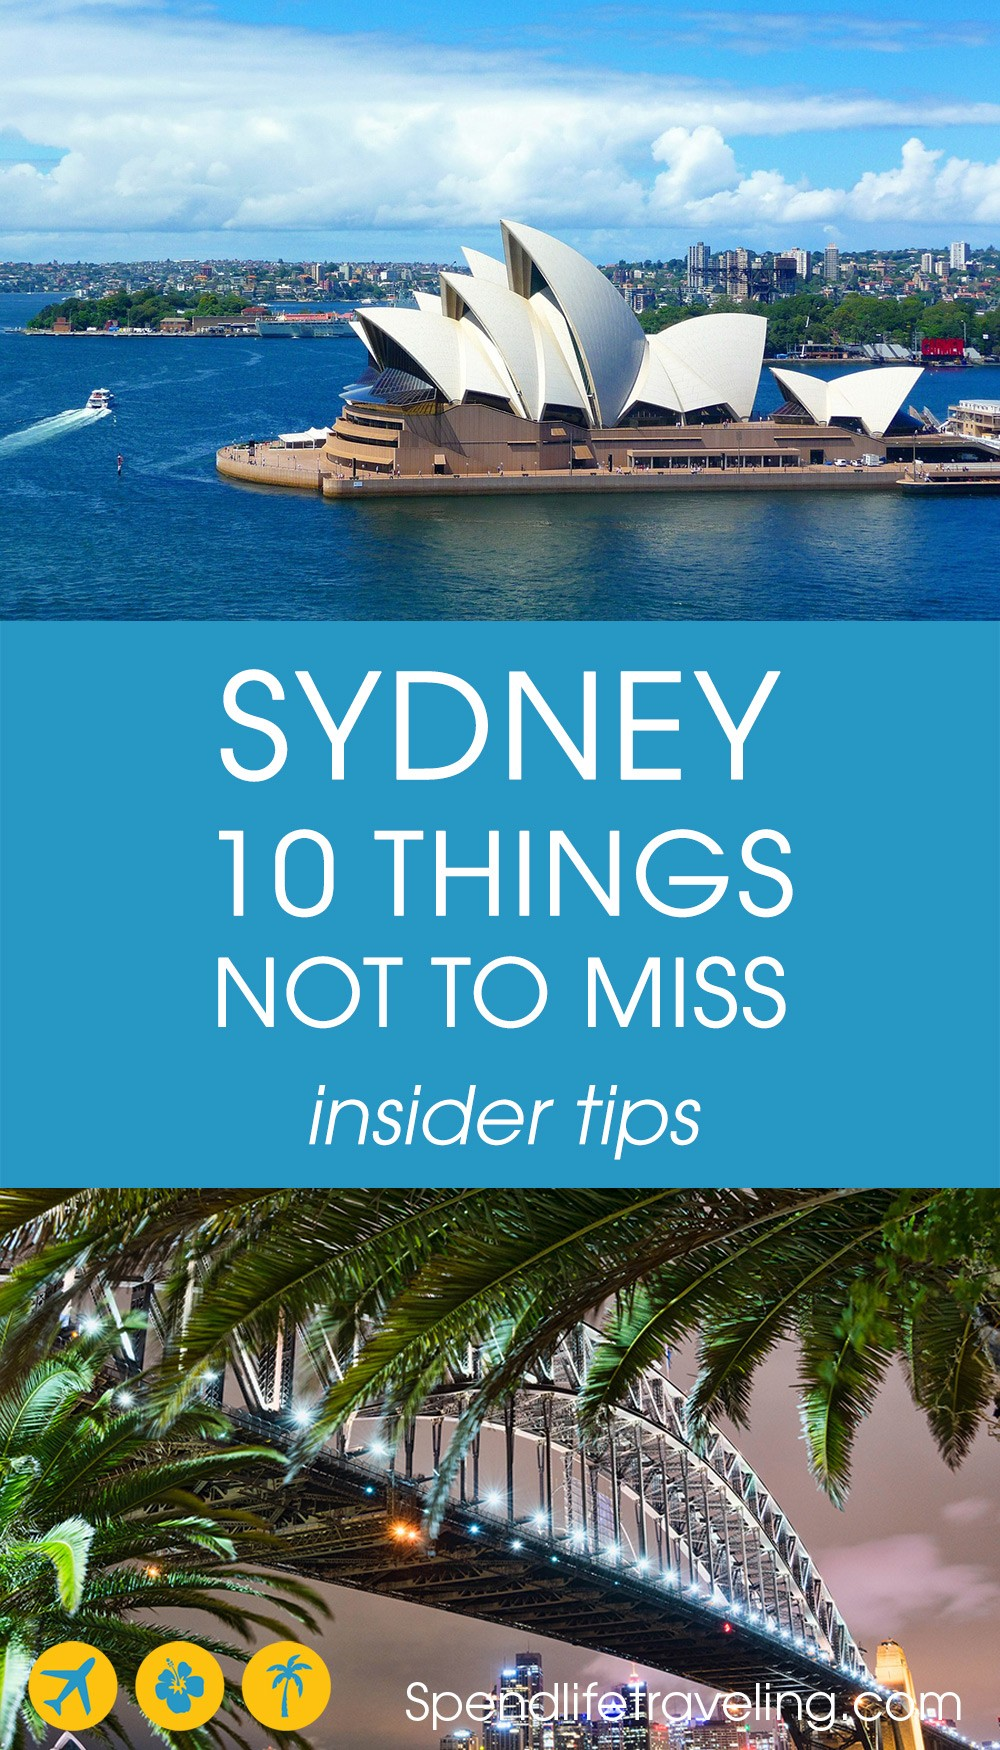 Things you definitely shouldn't miss when traveling to Sydney, Australia. Travel tips from a local.